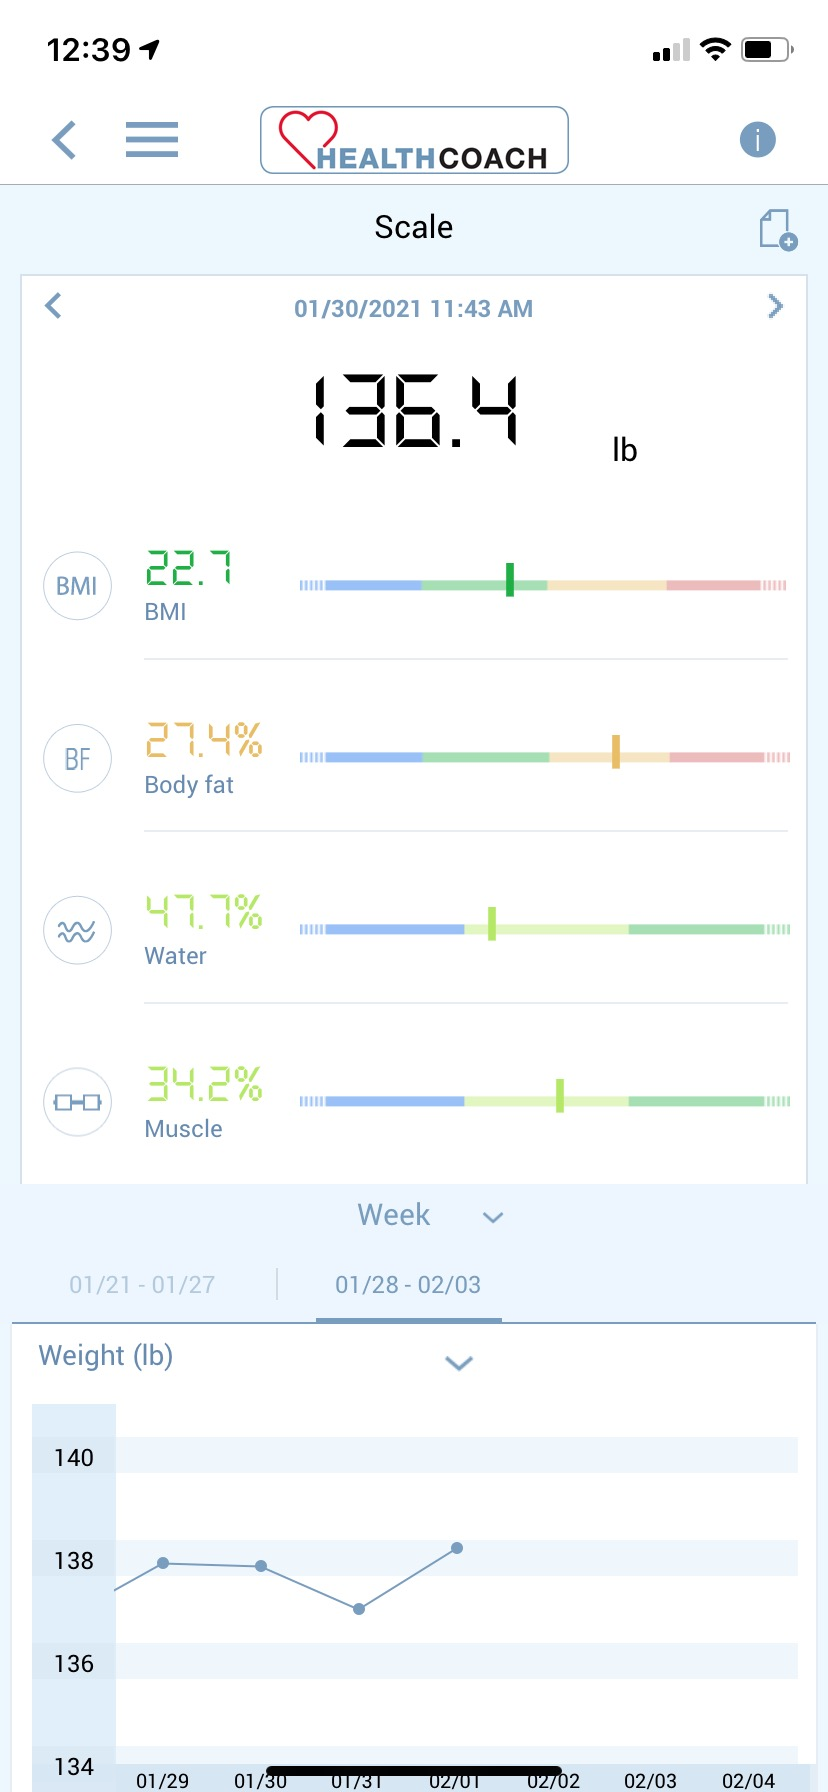 Health Coach app measurements